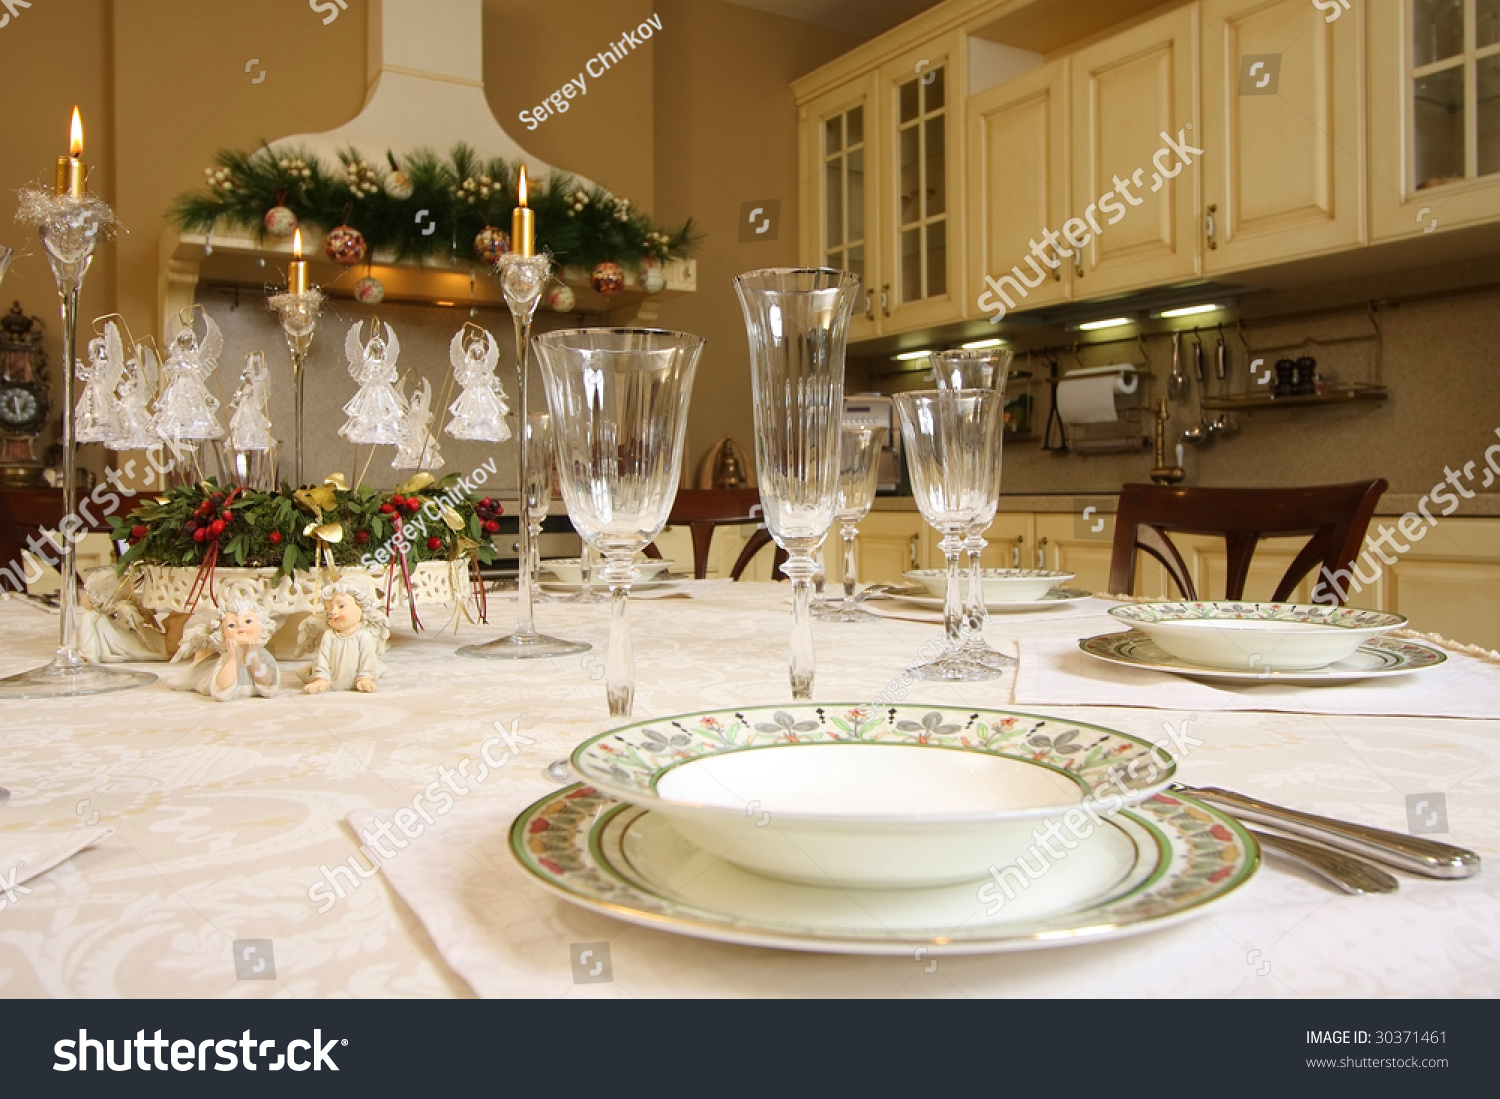 Christmas Tables Decorated The Table Decorated To Christmas Stock Photo 30371461